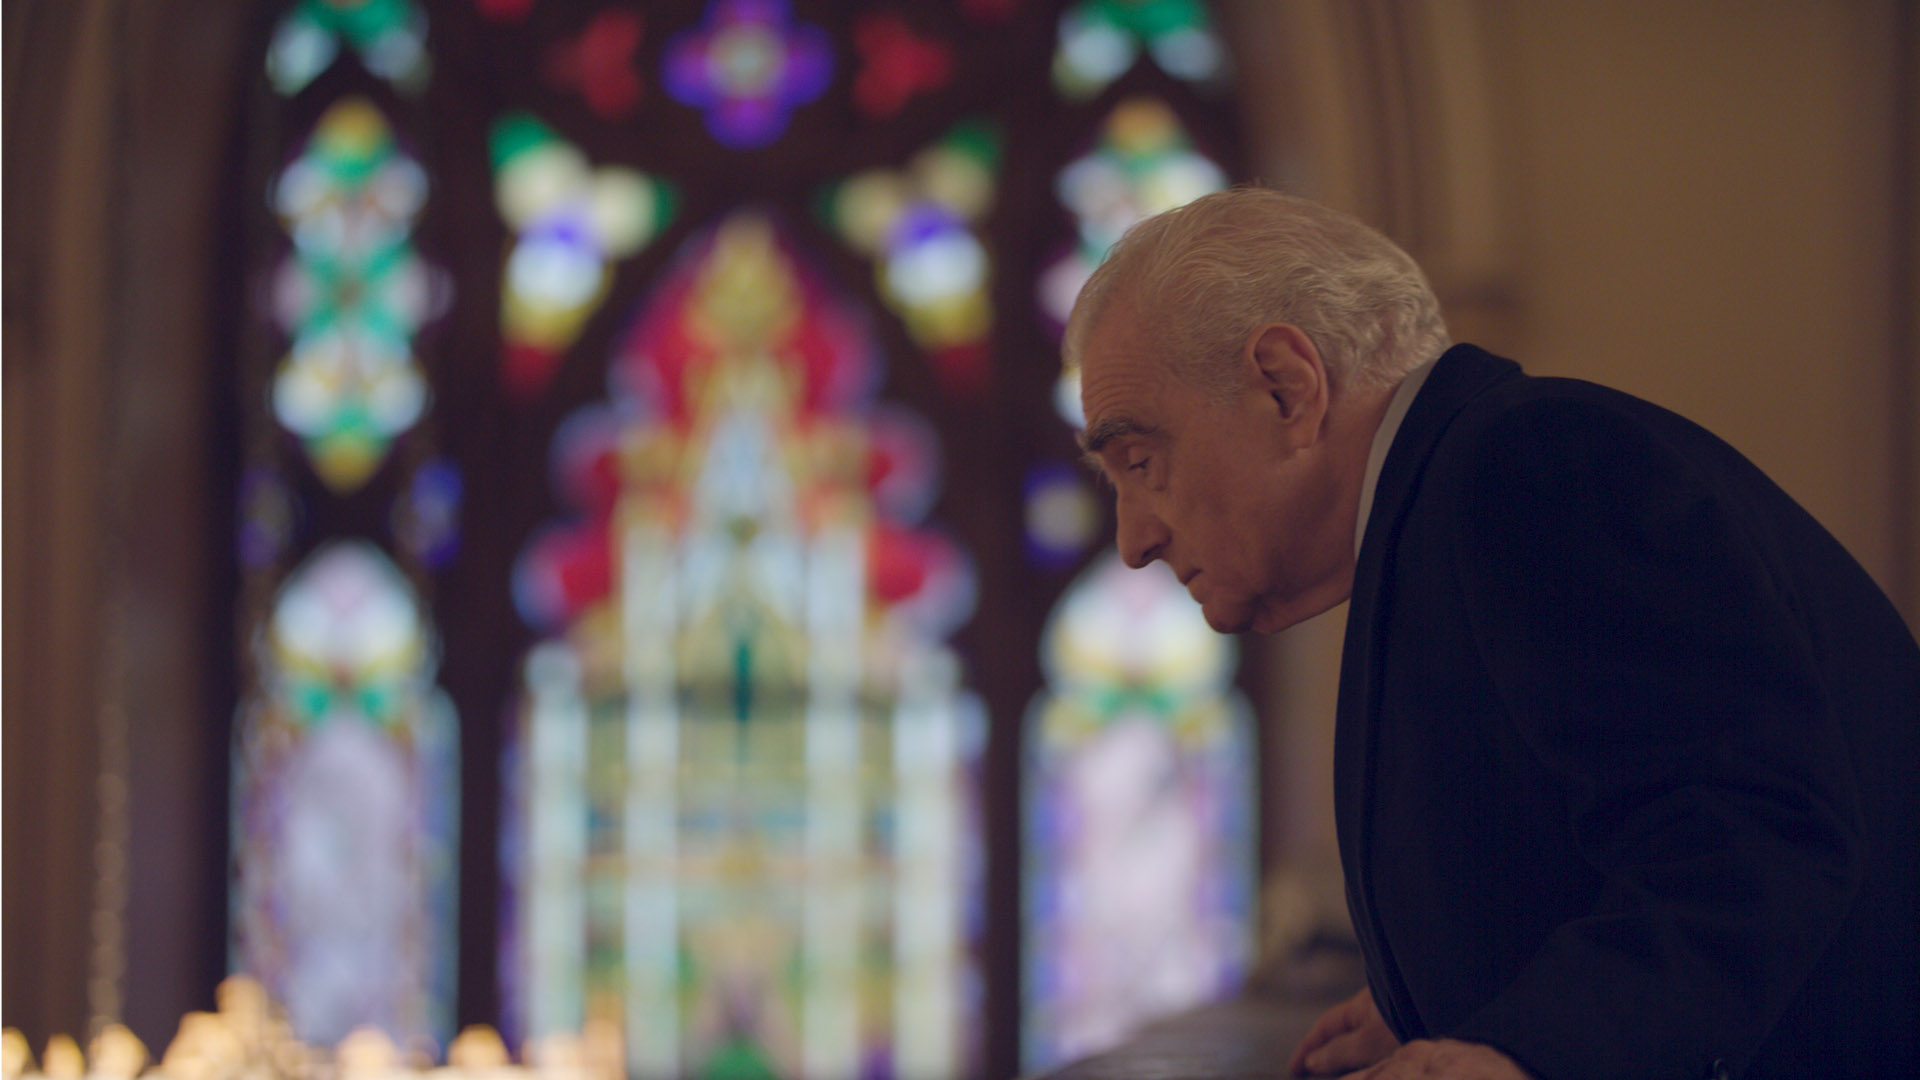 Abacus Media Rights to distribute the documentary 'The Oratorio' hosted by Martin Scorsese